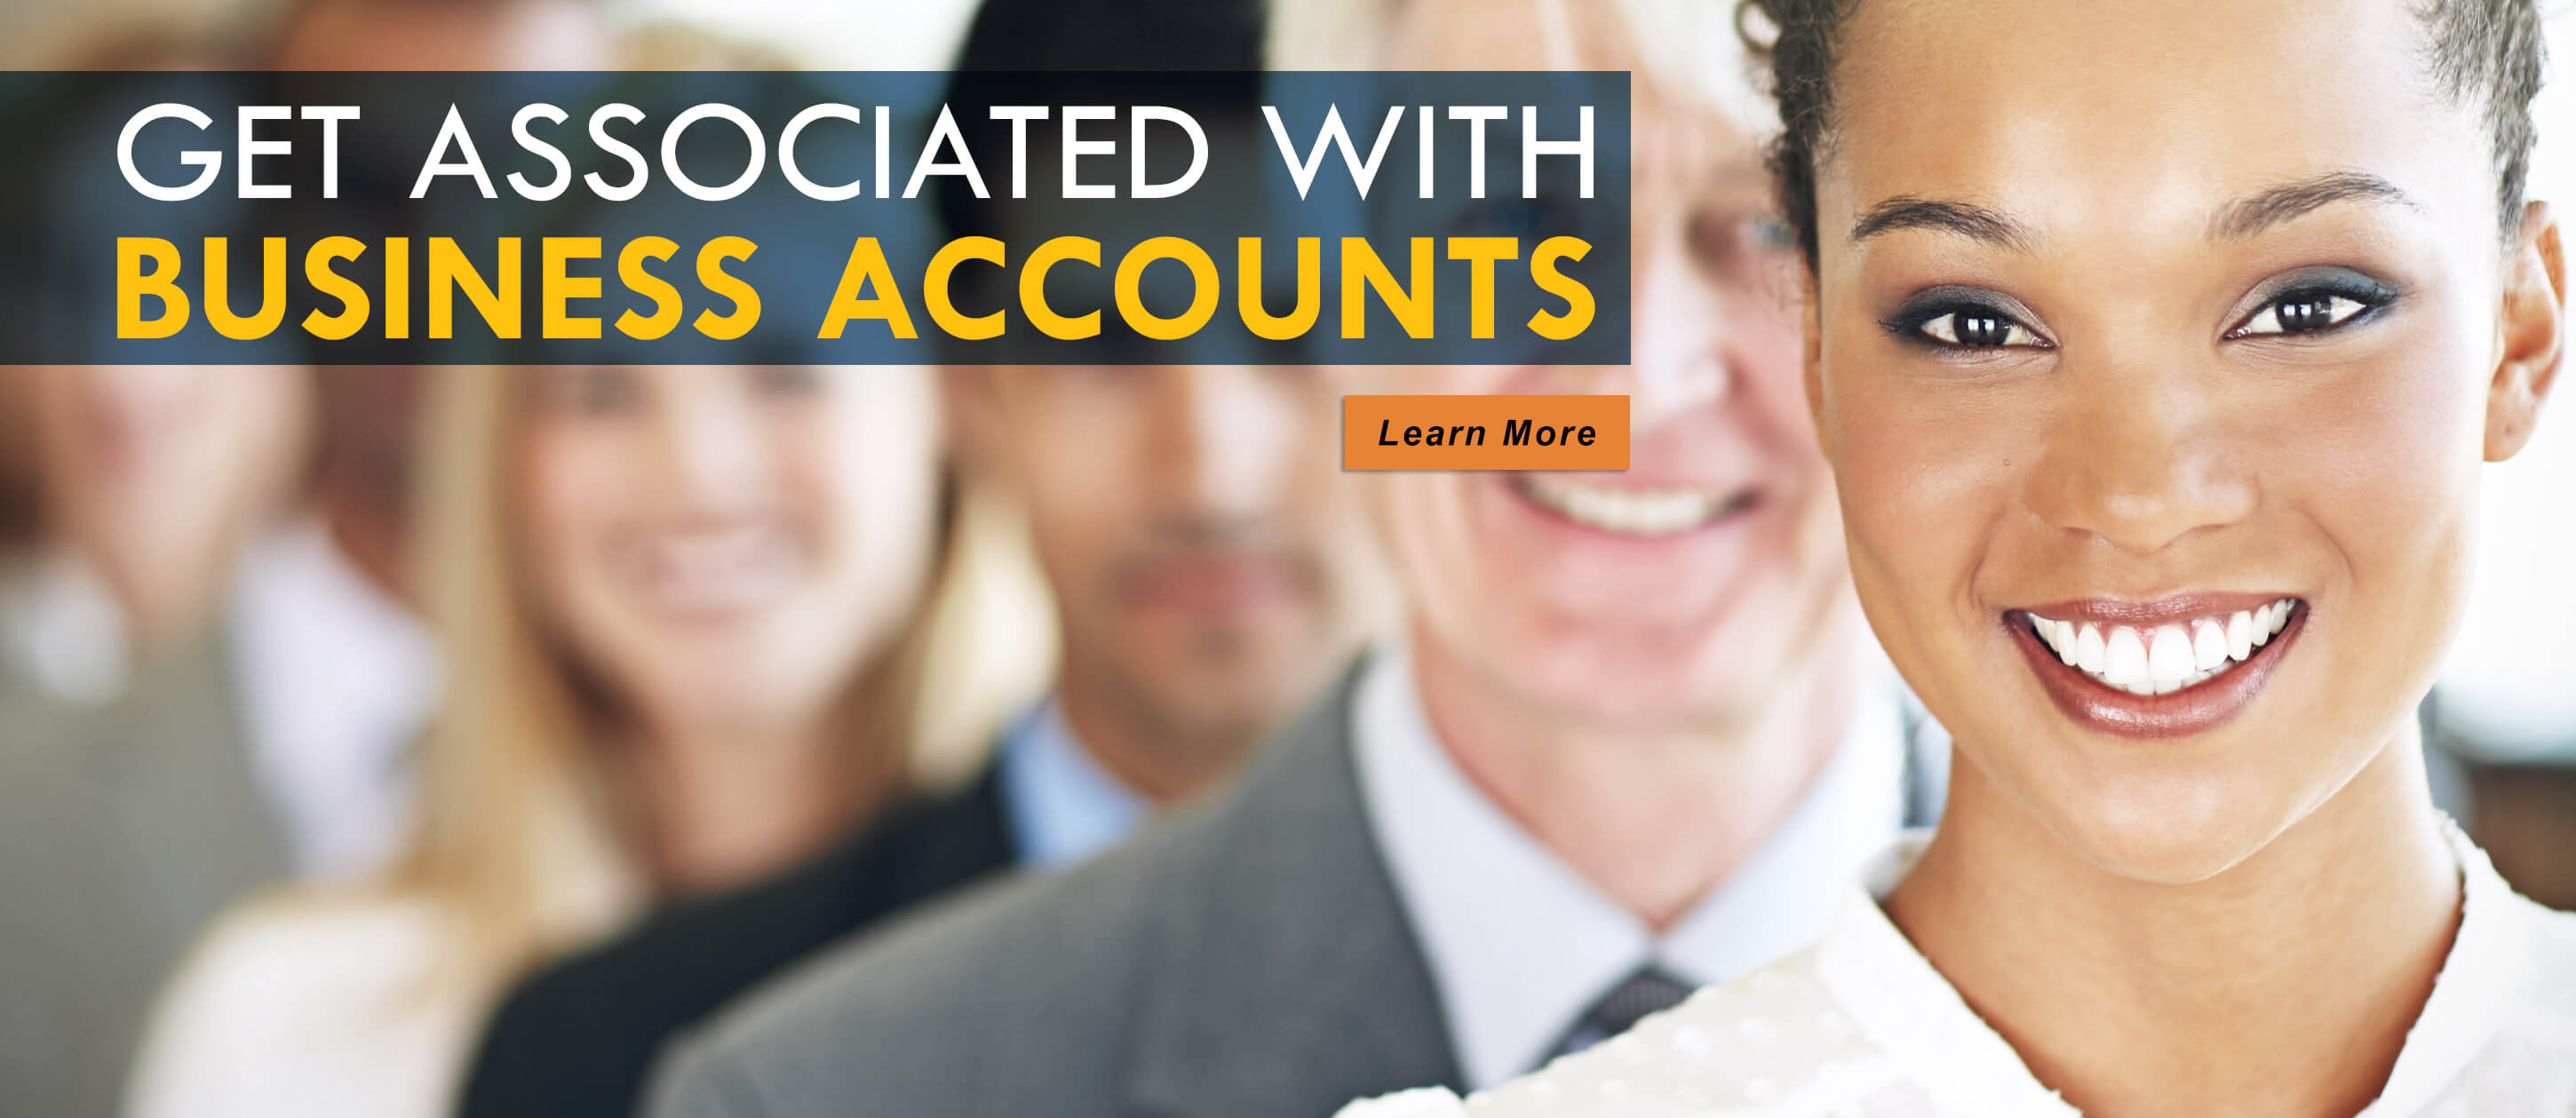 Get associated with Business Accounts. Learn more